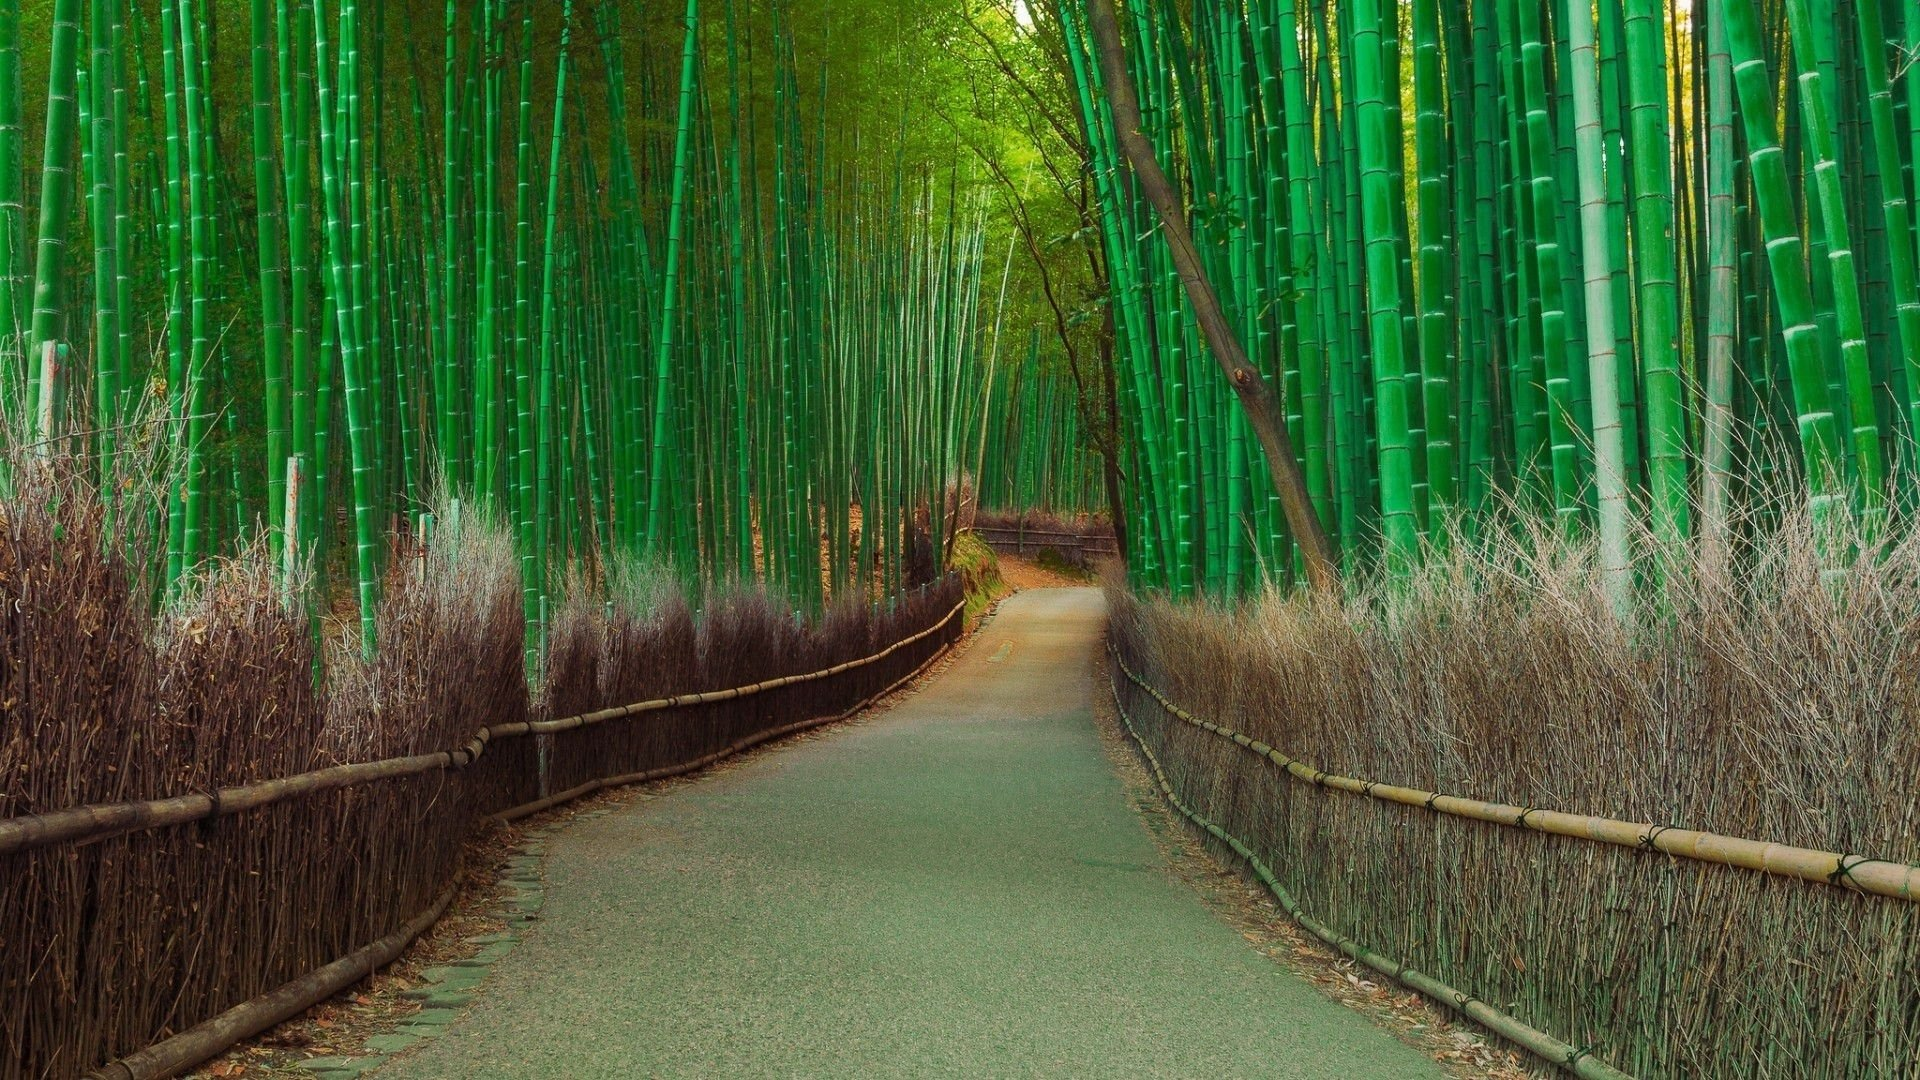 Earth - Bamboo  Path Nature Wallpaper